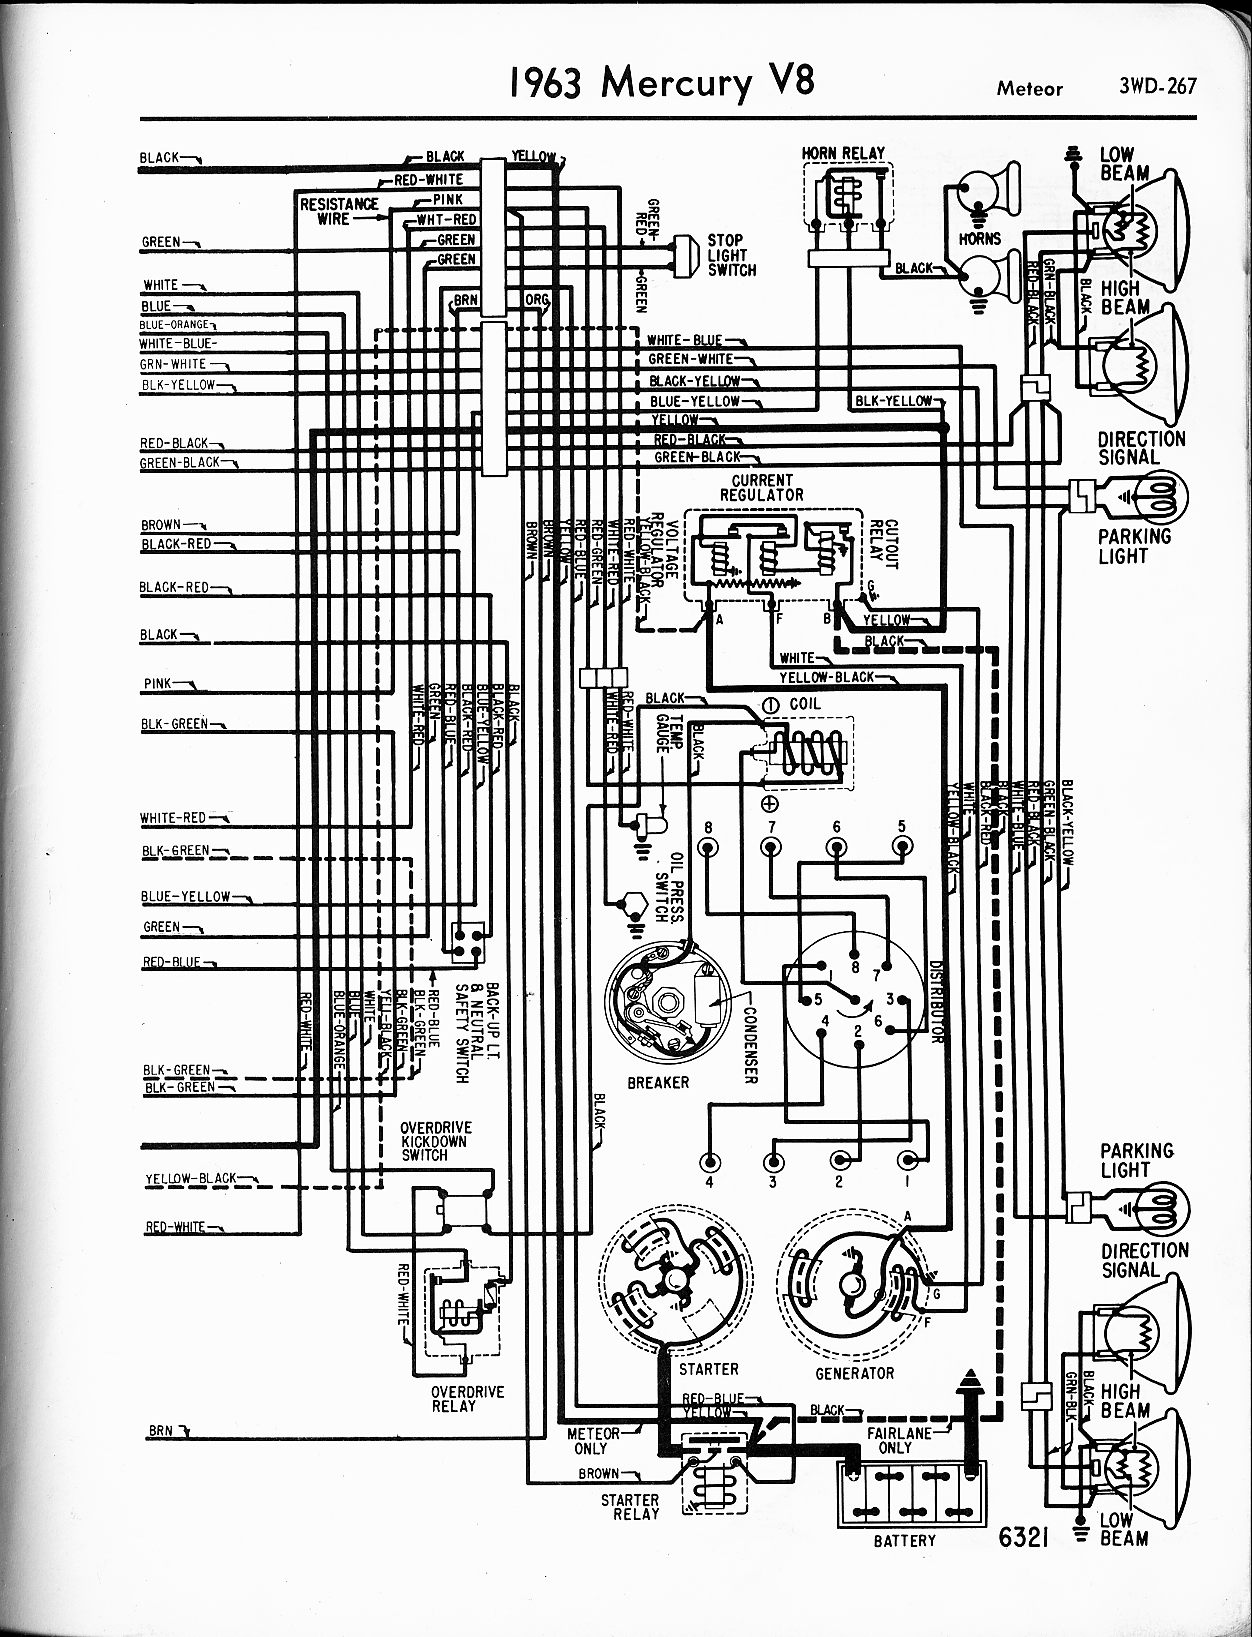 Mercury Wiring Diagrams The Old Car Manual Project 1973 Chevy C30 Van Wiring  Diagram 1978 Chevy Turn Signal Wiring Diagram